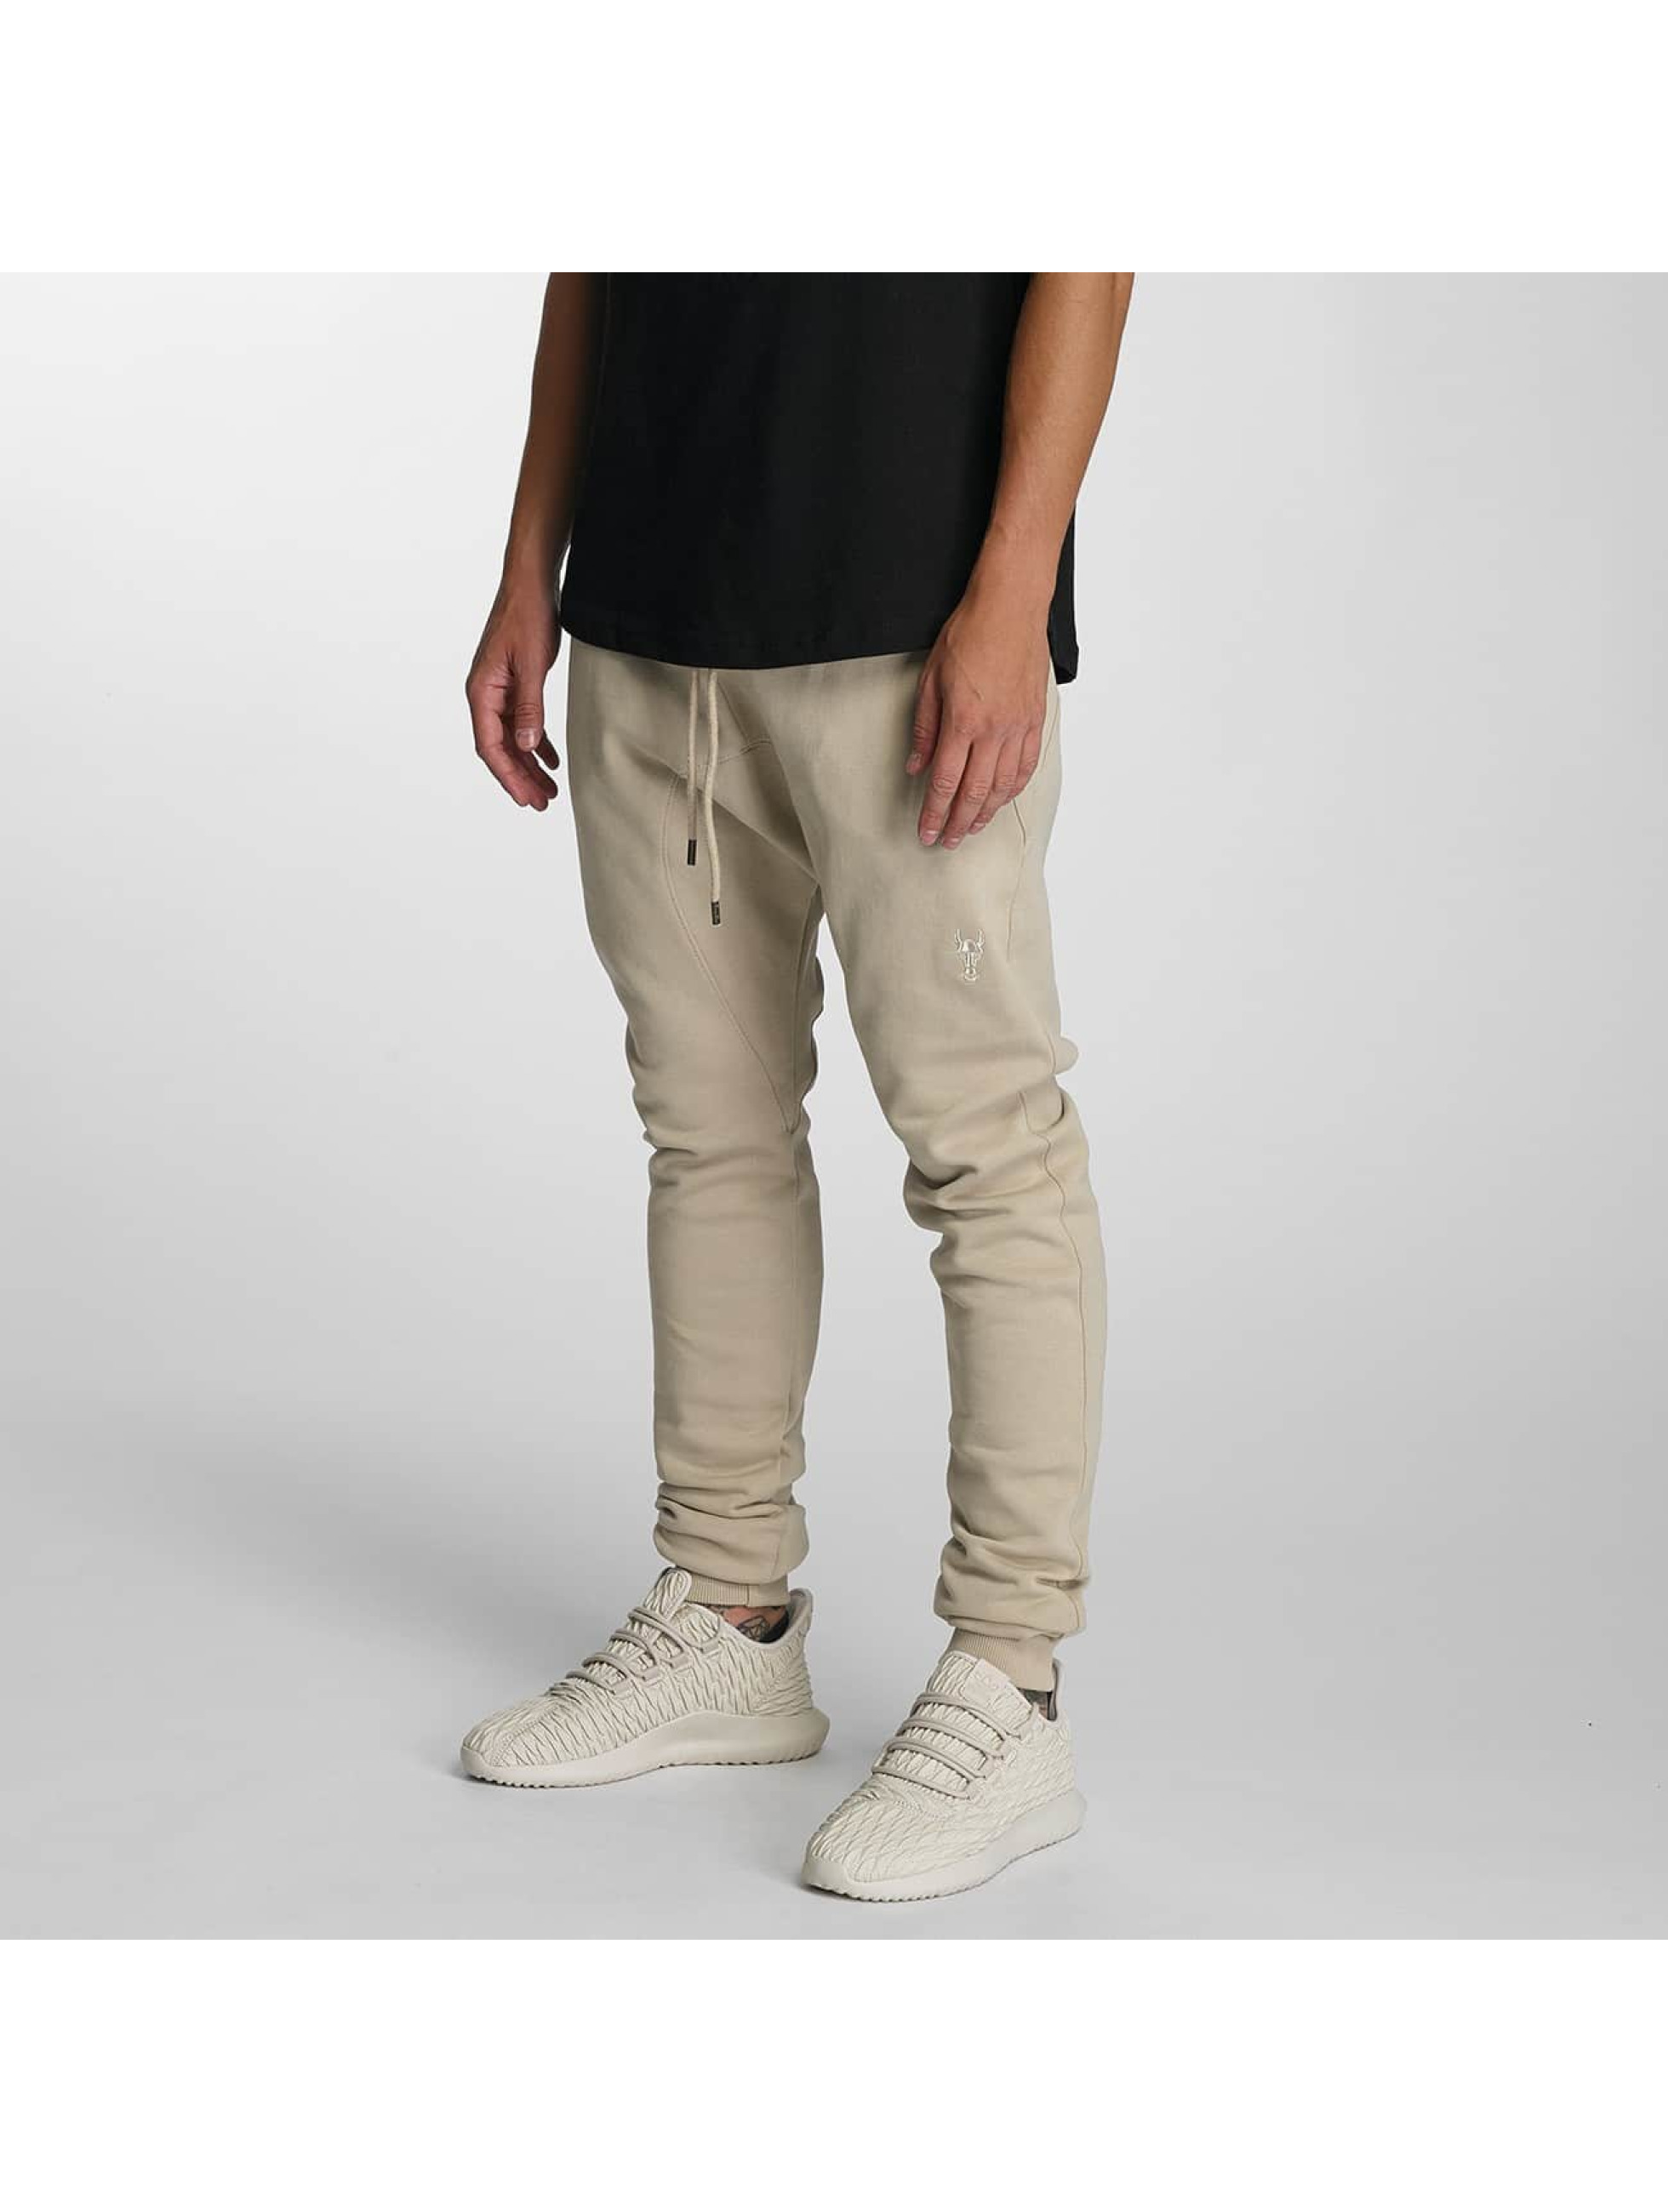 Cavallo de Ferro / Sweat Pant Streets Abram in beige 2XL